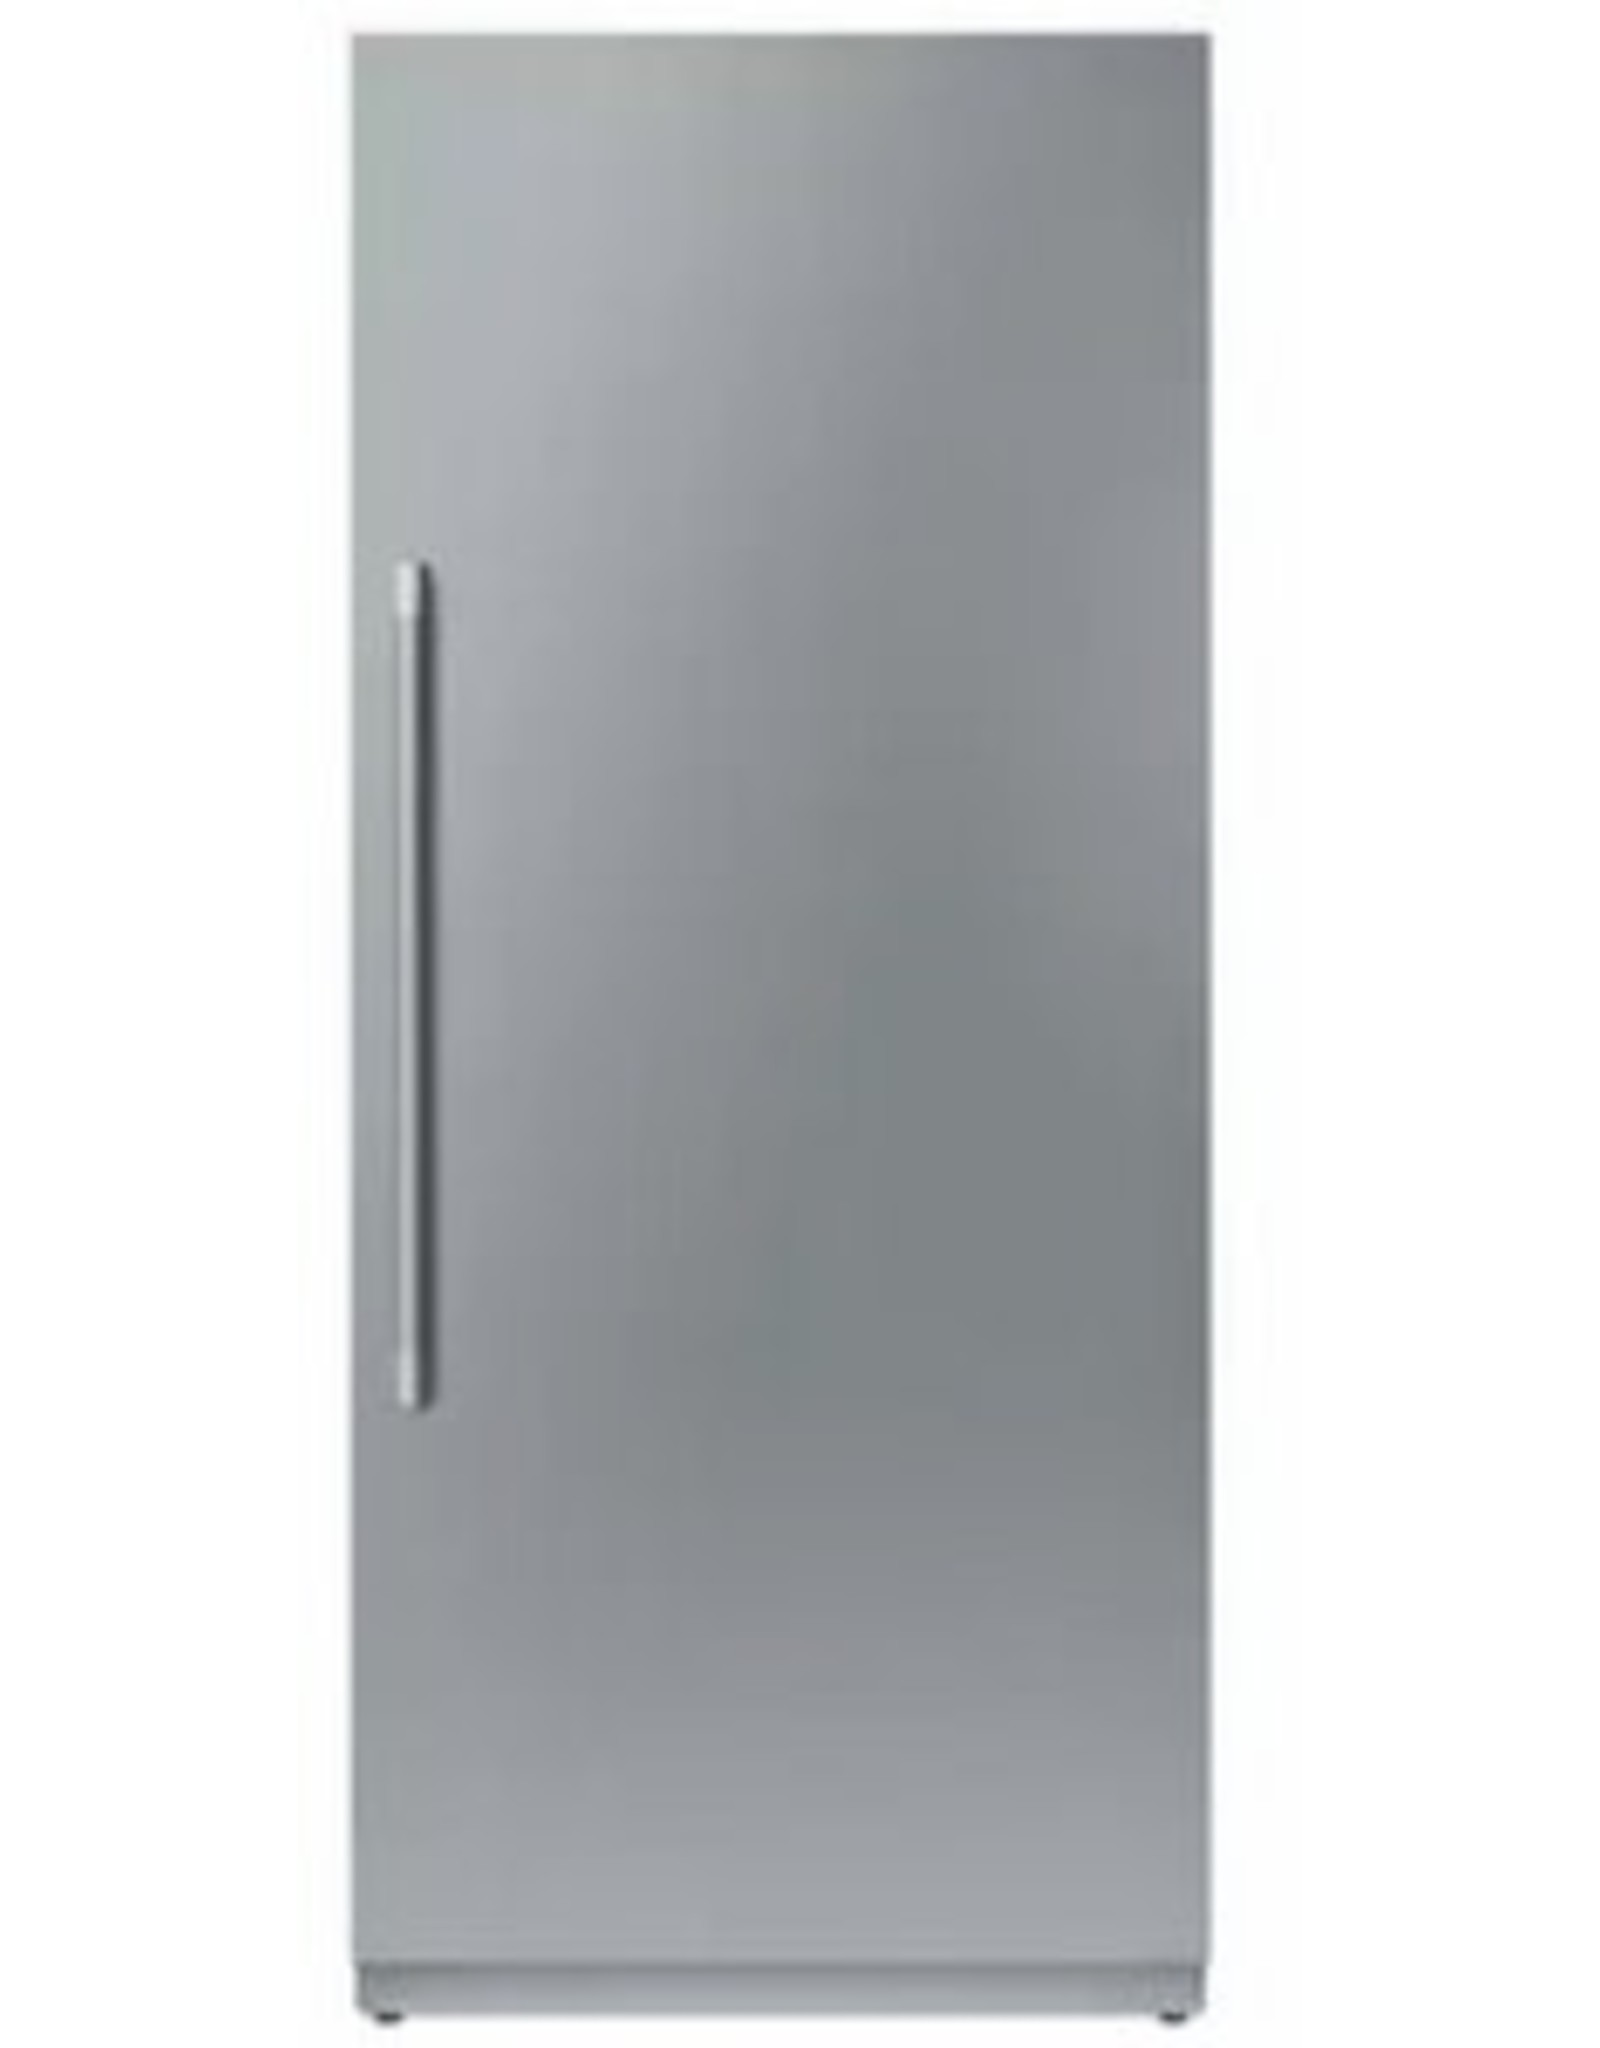 """T36IR900SP Thermador 36"""" Freedom Collection Built-In Refrigerator Column with SoftClose Drawers and TFT Control Panel - Custom Panel"""